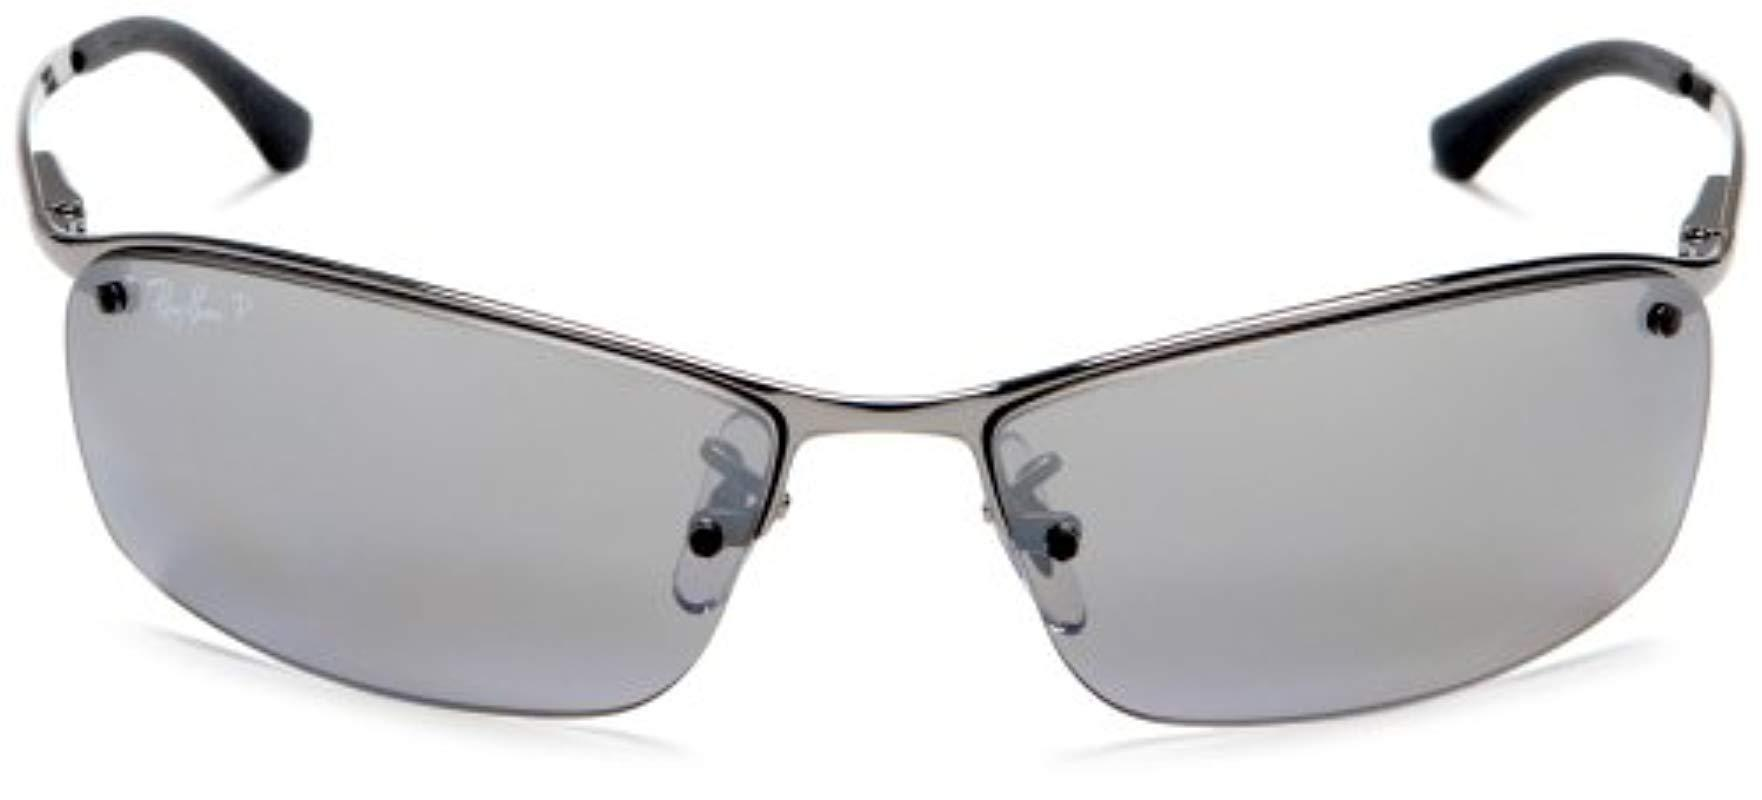 c620370092e Ray-Ban - Multicolor Polarized Sunglasses Rb3183 63 Mm for Men - Lyst. View  fullscreen